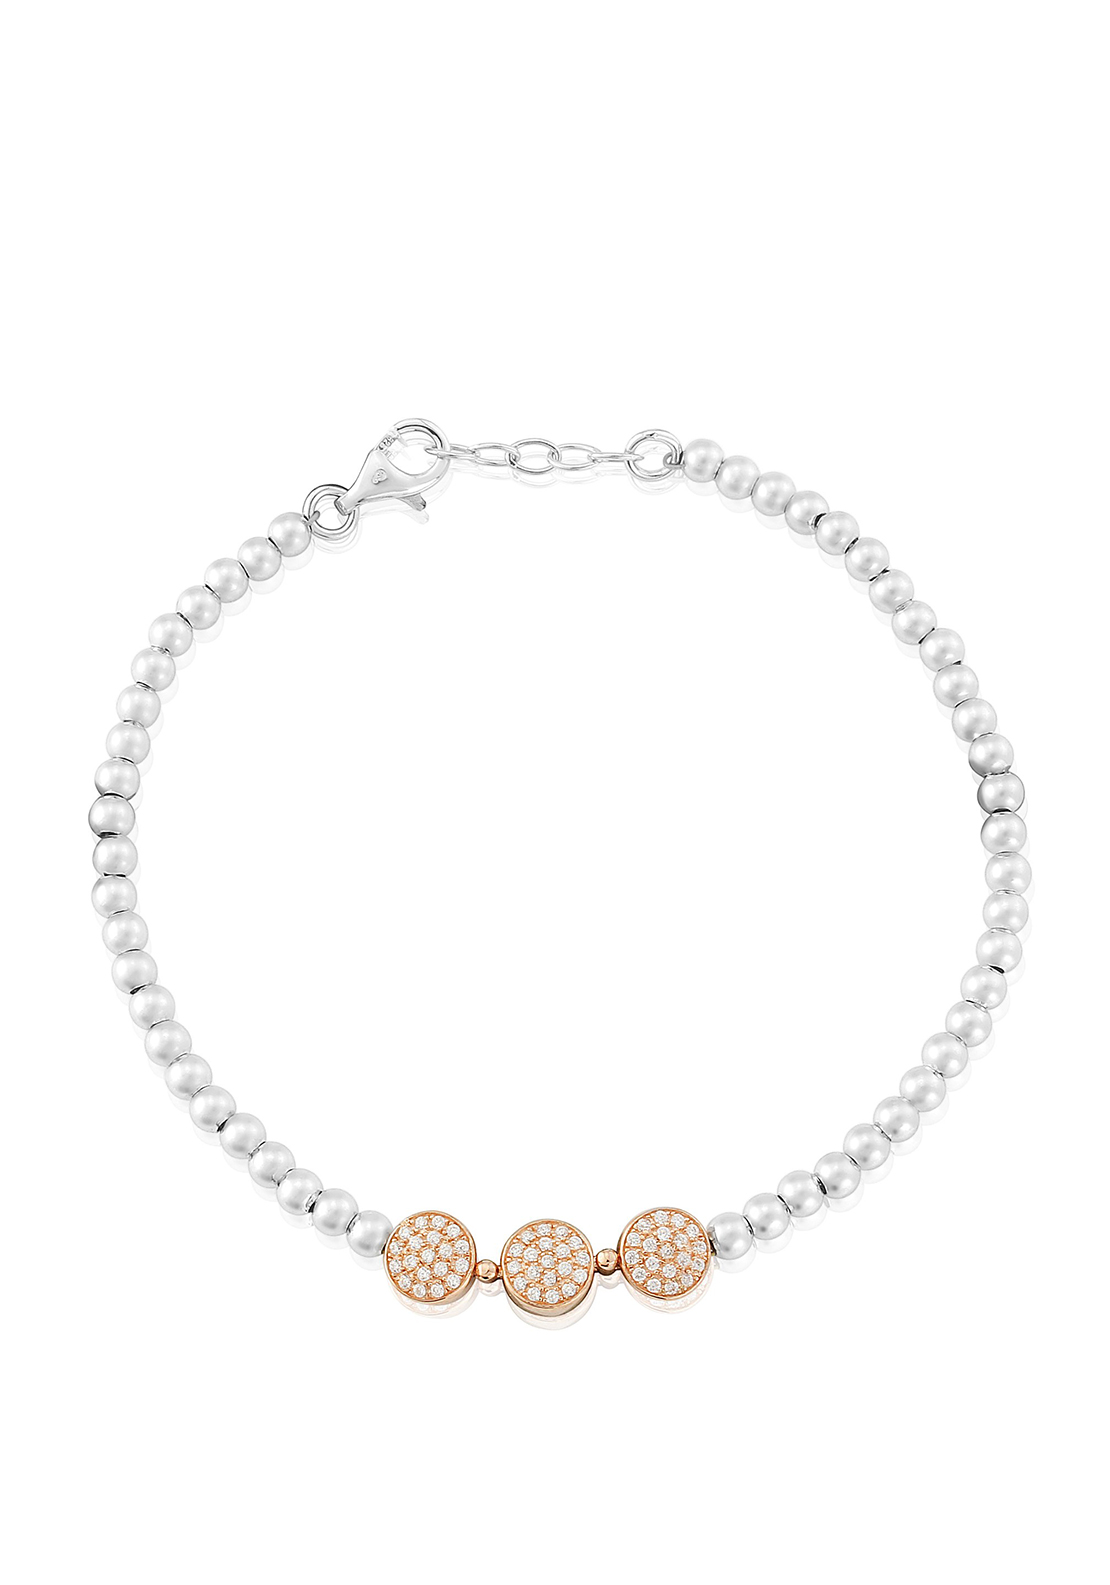 Waterford Crystal Rose Gold Charm Bead Bracelet, Silver